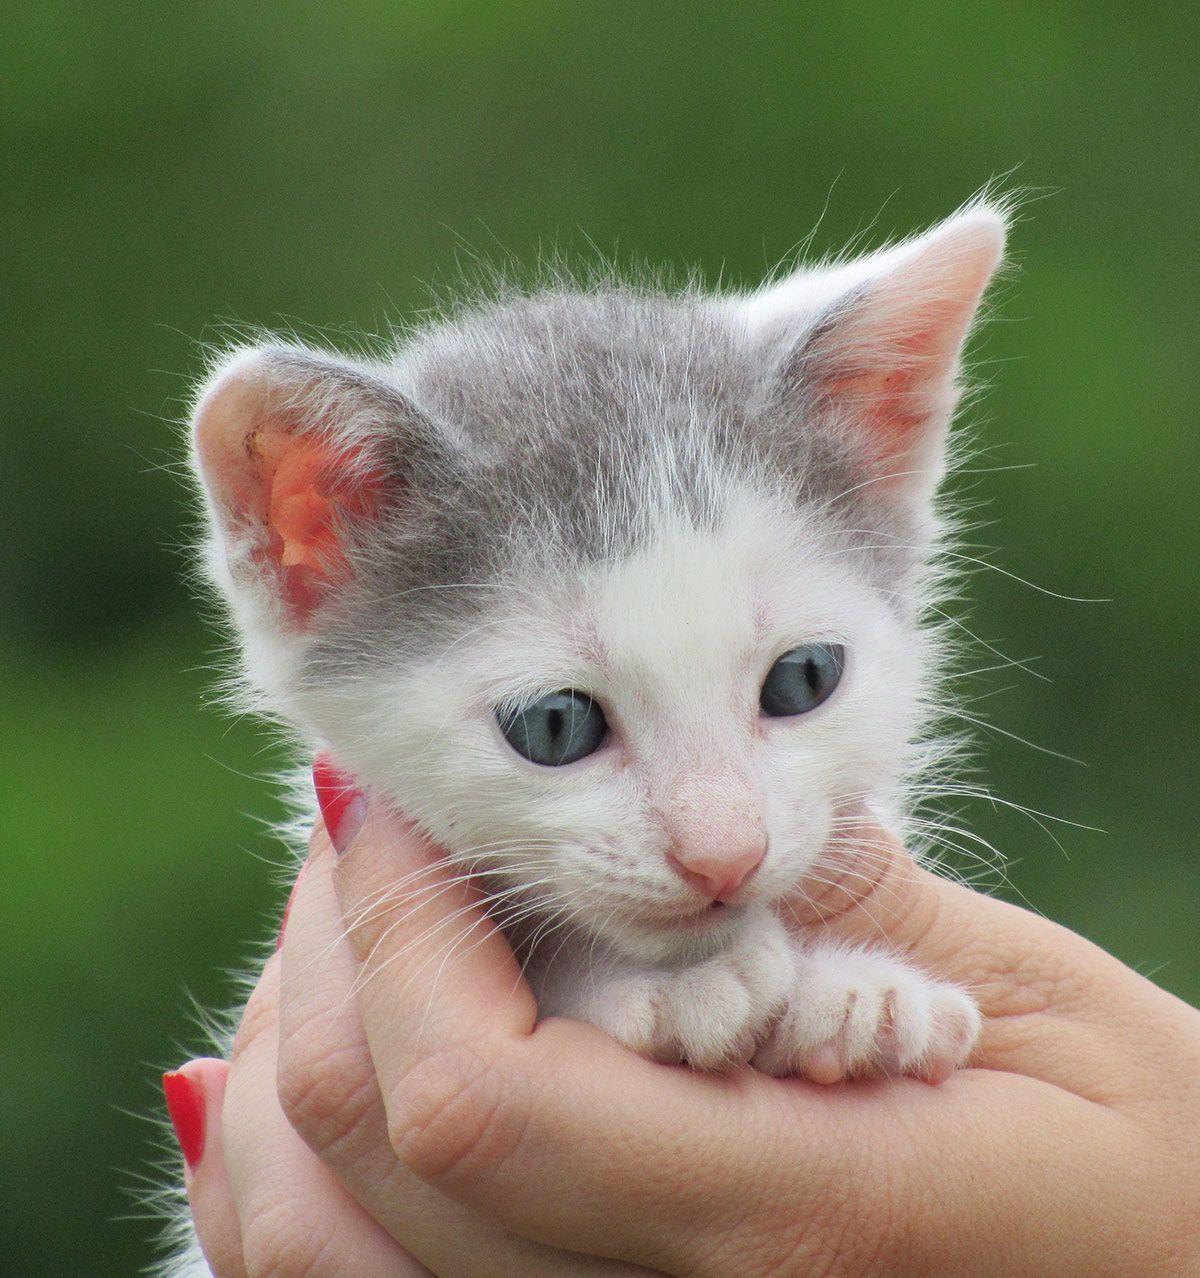 All The Best Kitten Names In One Place With Cute Unique And Creative Names For Your Baby Boy Or Girl Kitty Find The Perfect Cat In 2020 Kitten Names Kitten Cat Names